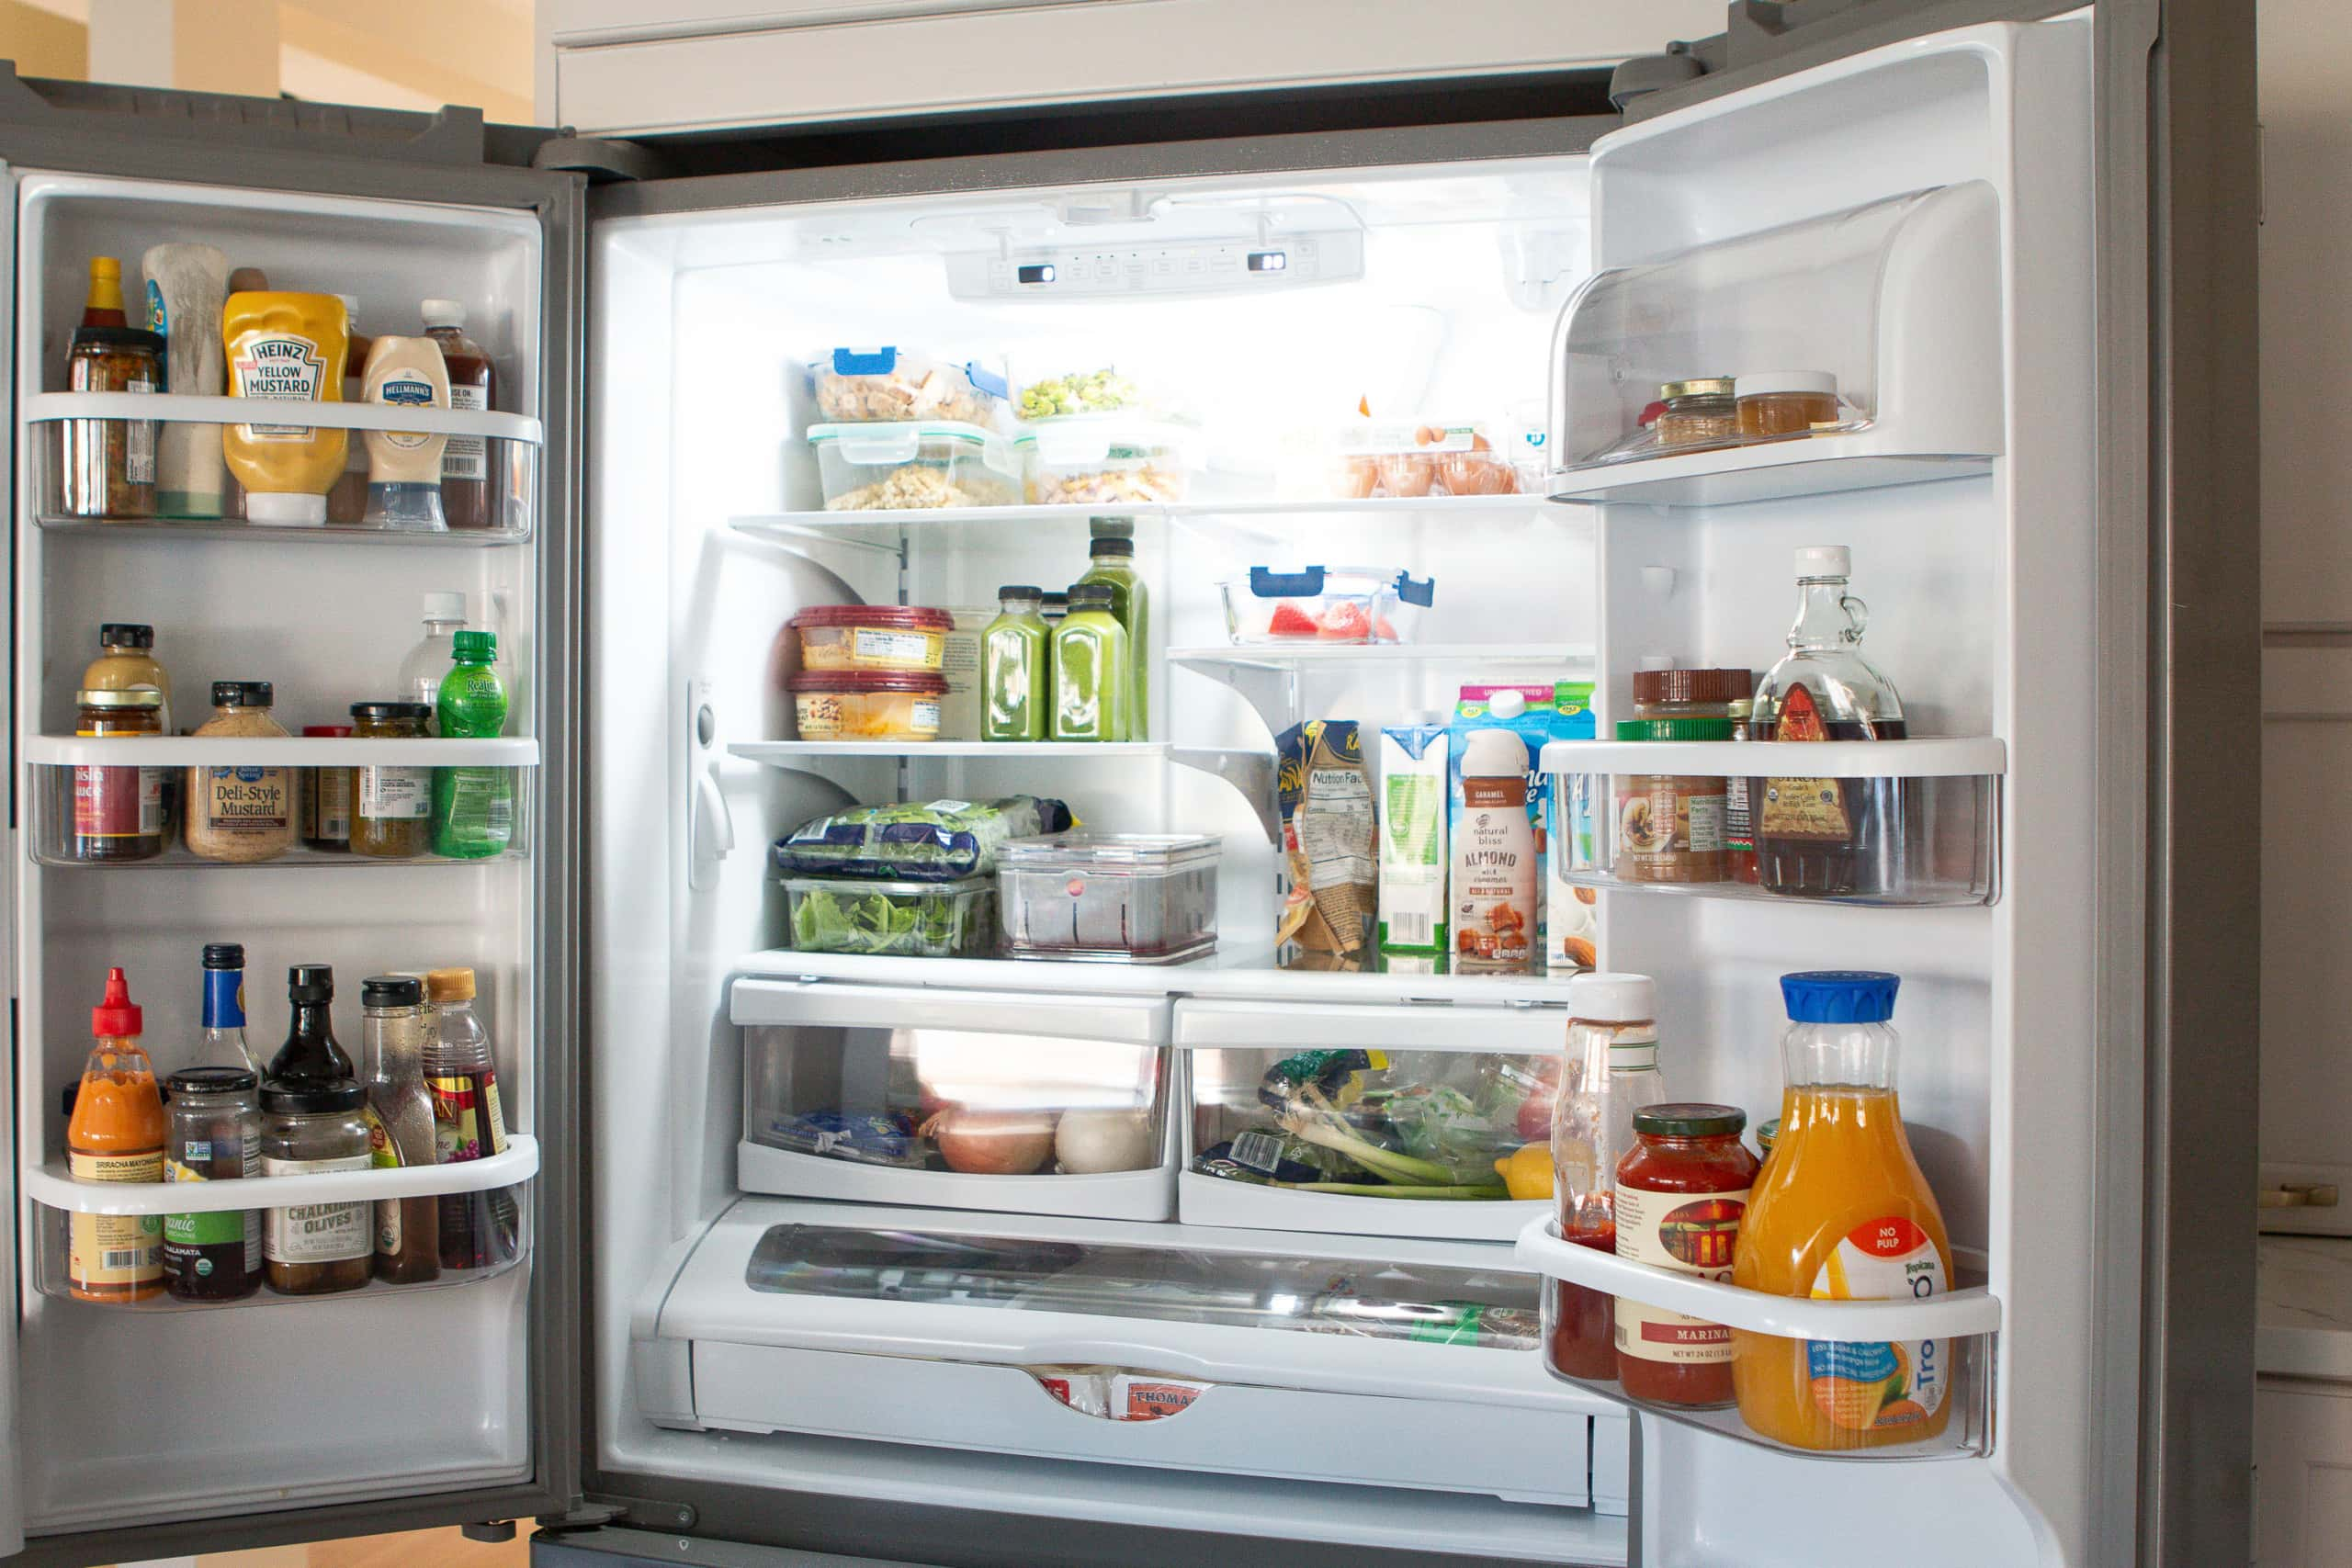 French door style refrigerator from Maytag